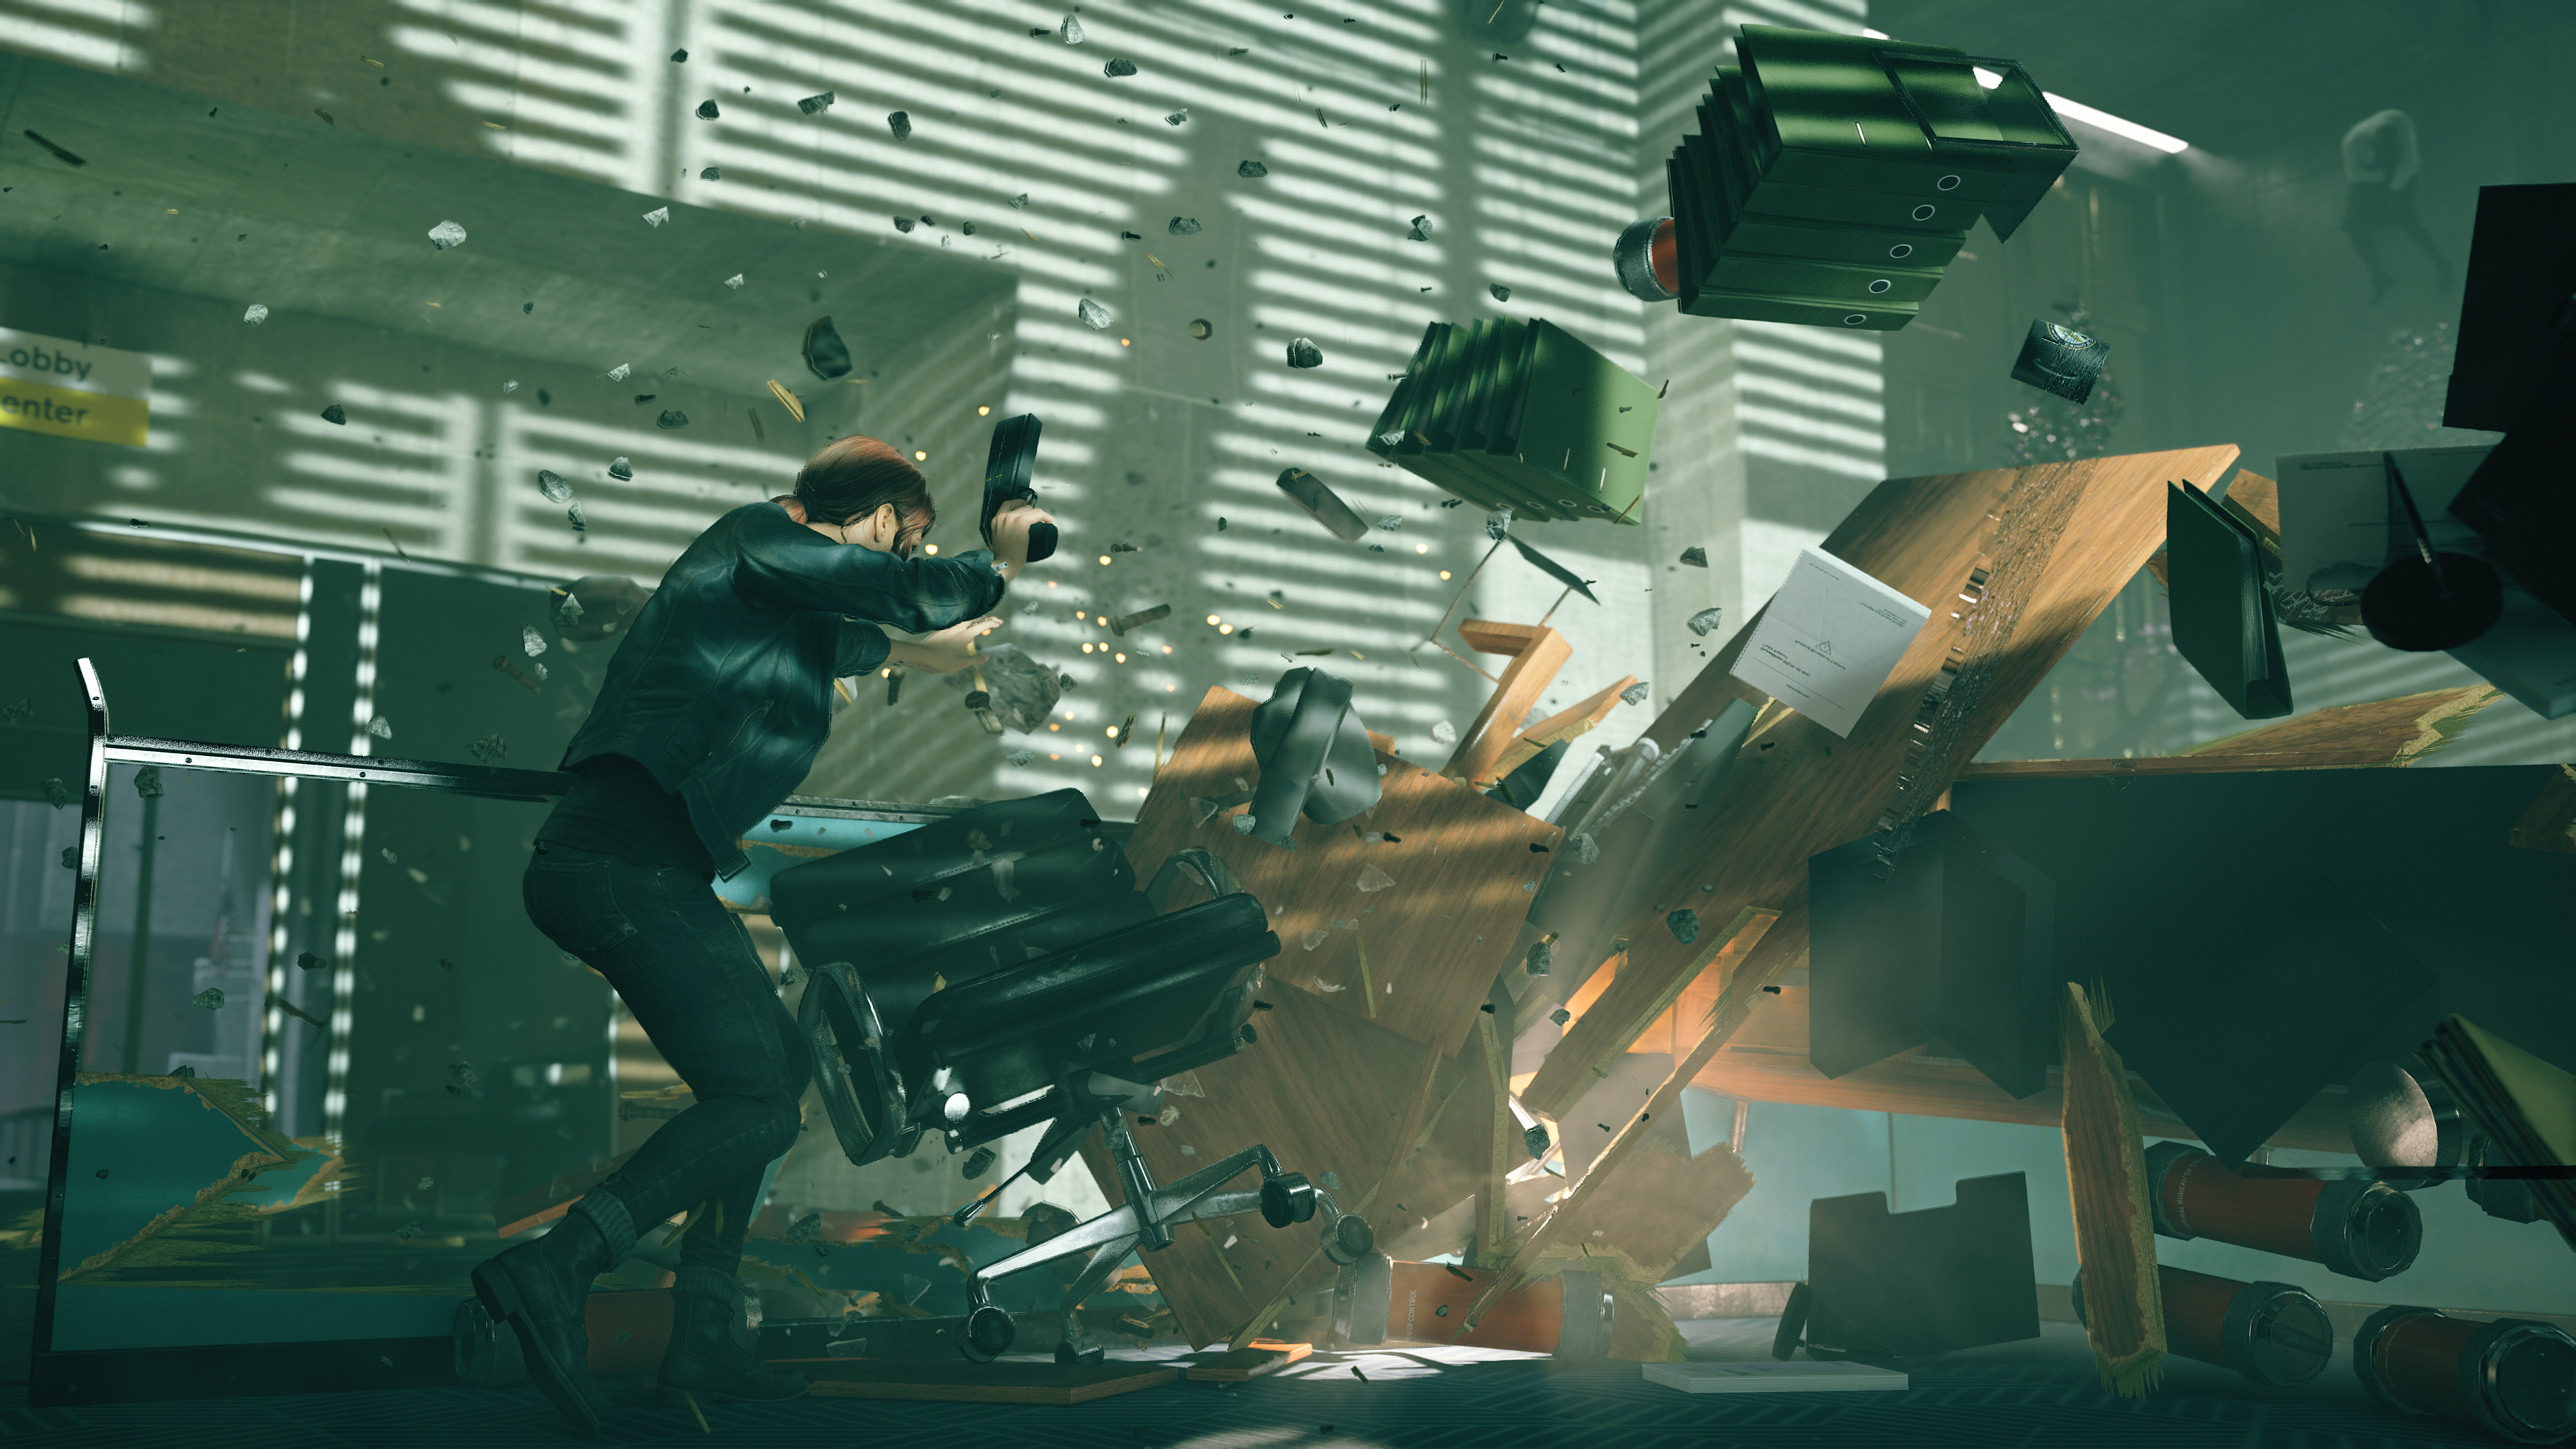 A character reacts to an explosion in Remedy's game Control